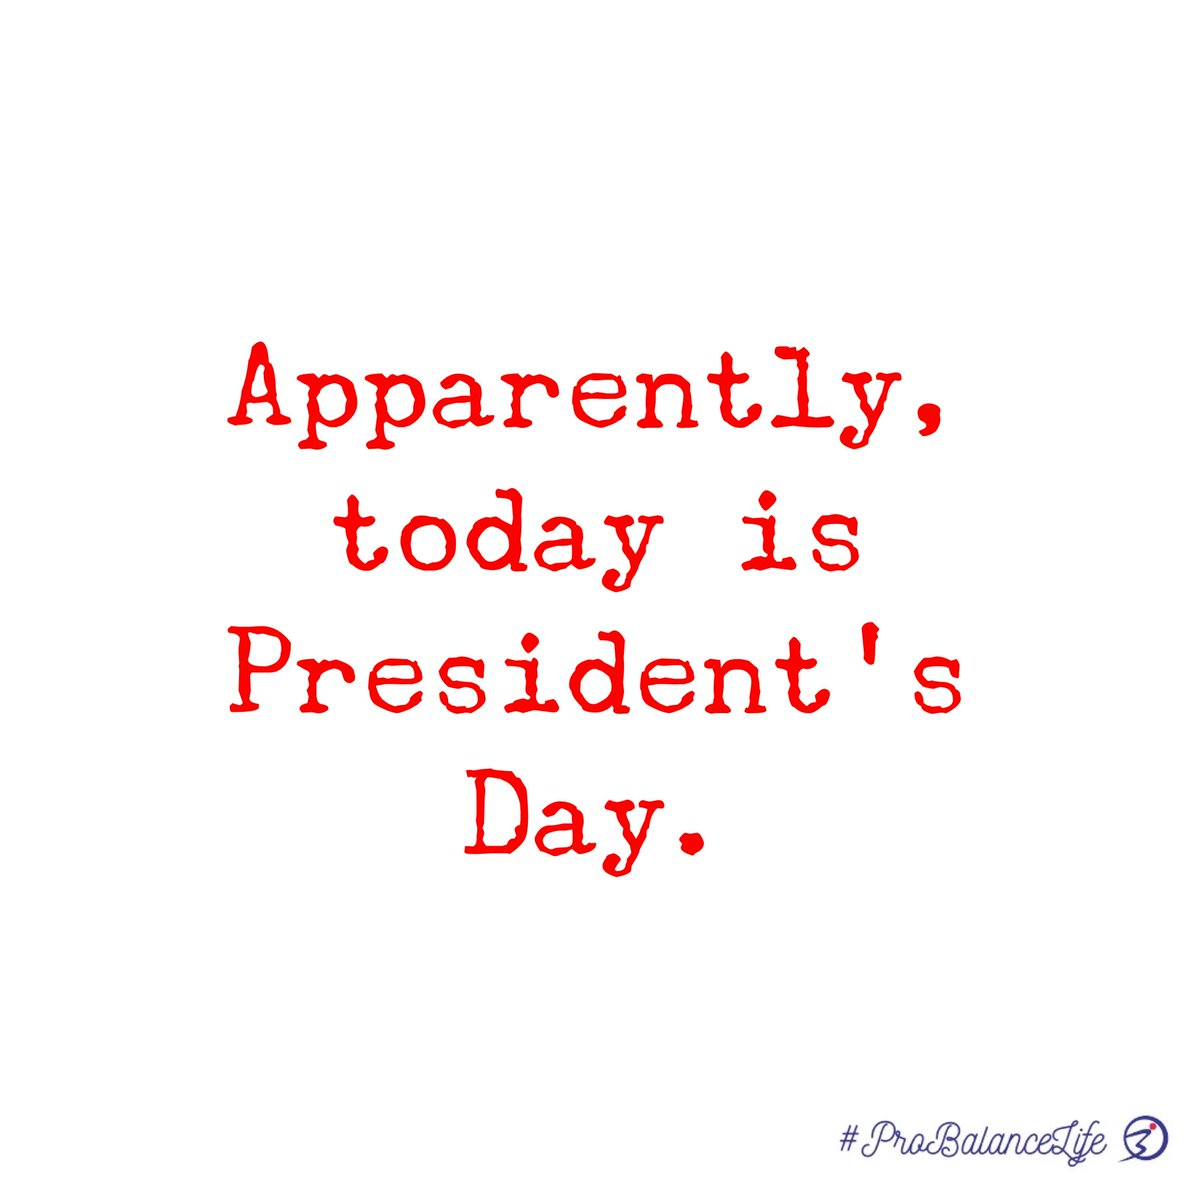 Apparently, today is #presidentsday  #AprilFoolsDay #aprilfool #COVID19Response #HealthCareWorkers @realDonaldTrump @maddowpic.twitter.com/oTa1qeywKE